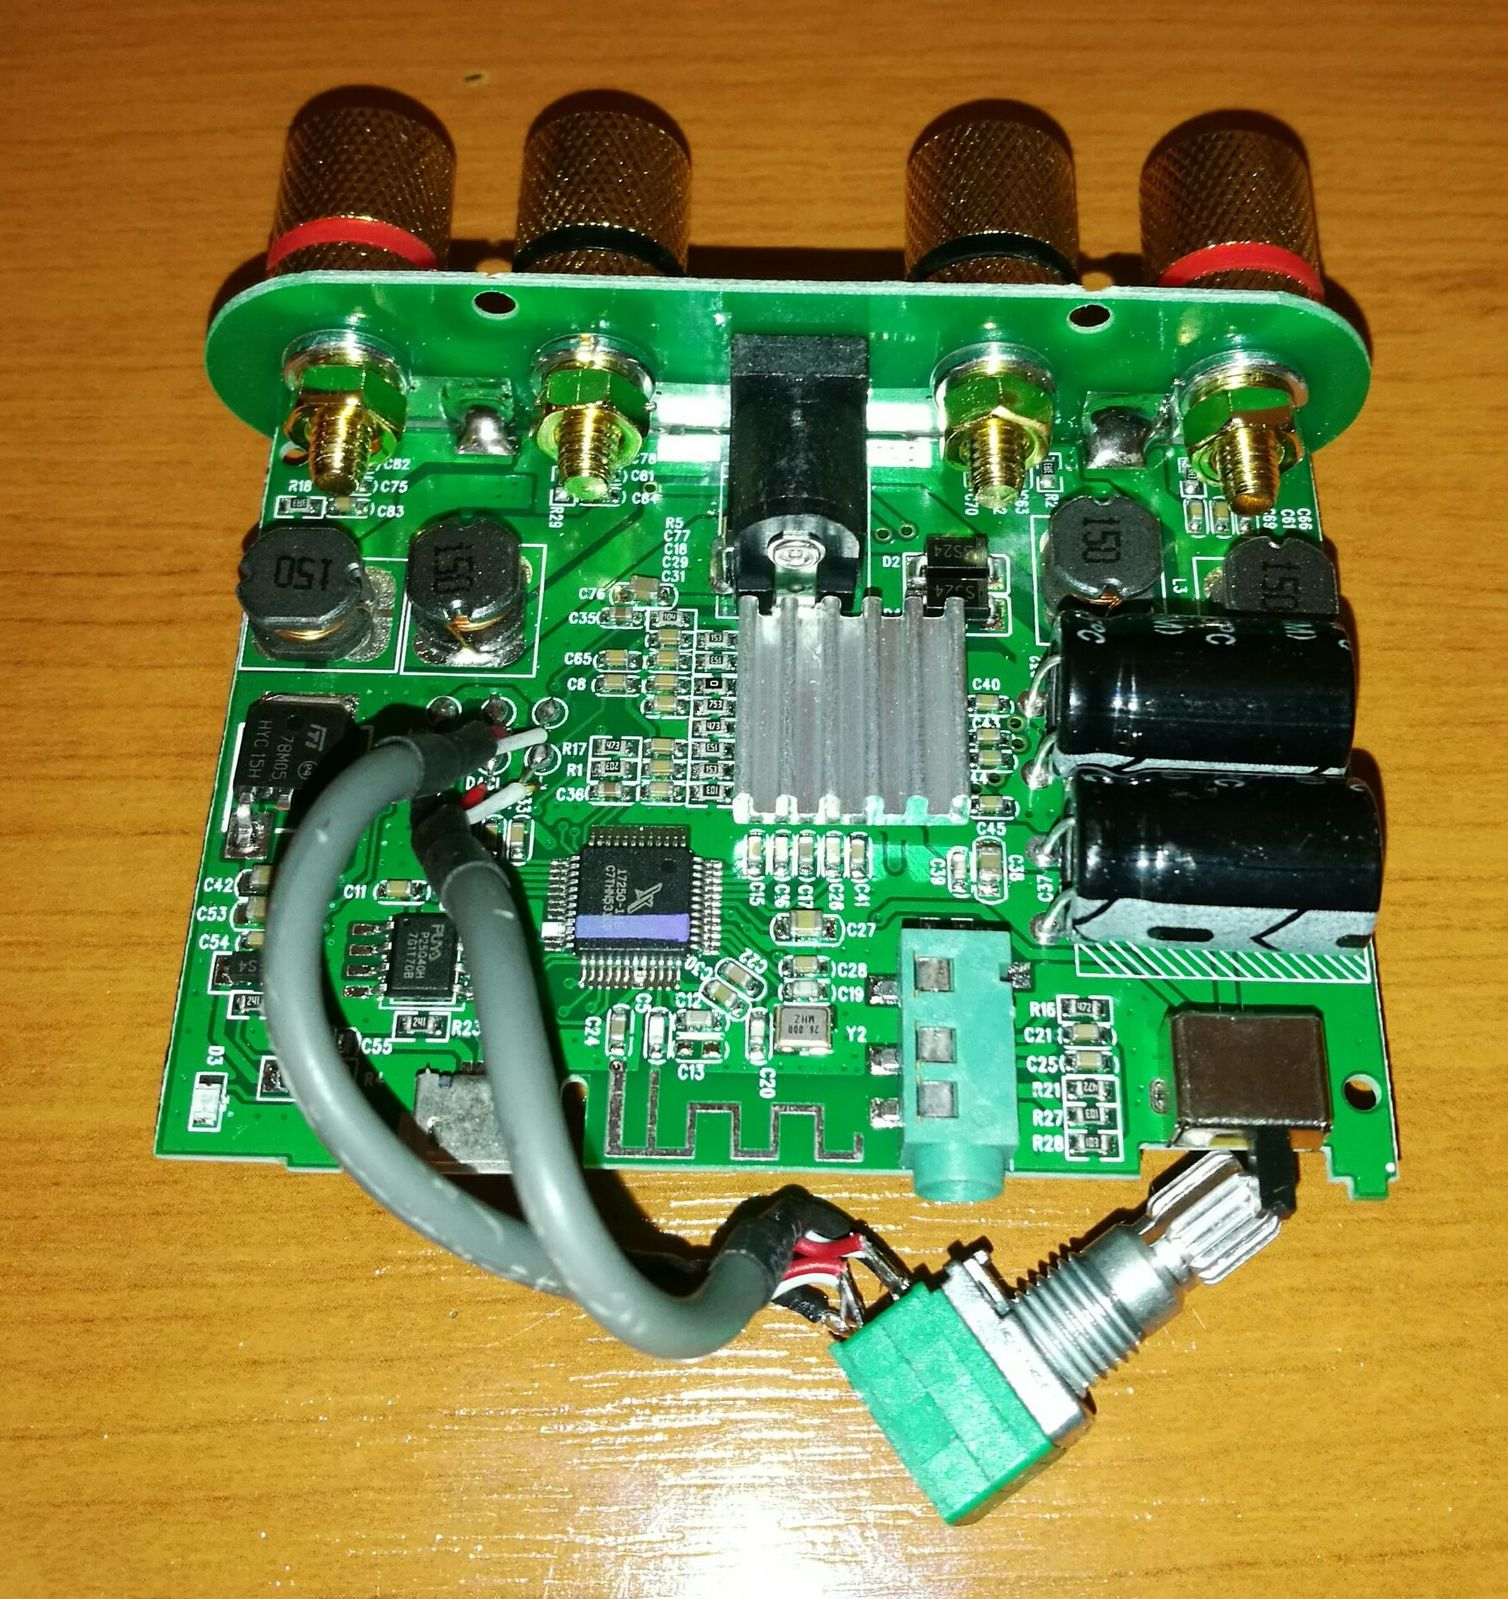 Tpa3116d2 Amp Page 1053 Diyaudio Class D Amplifier Circuit Tpa3118d2 Subwoofer Click The Image To Open In Full Size